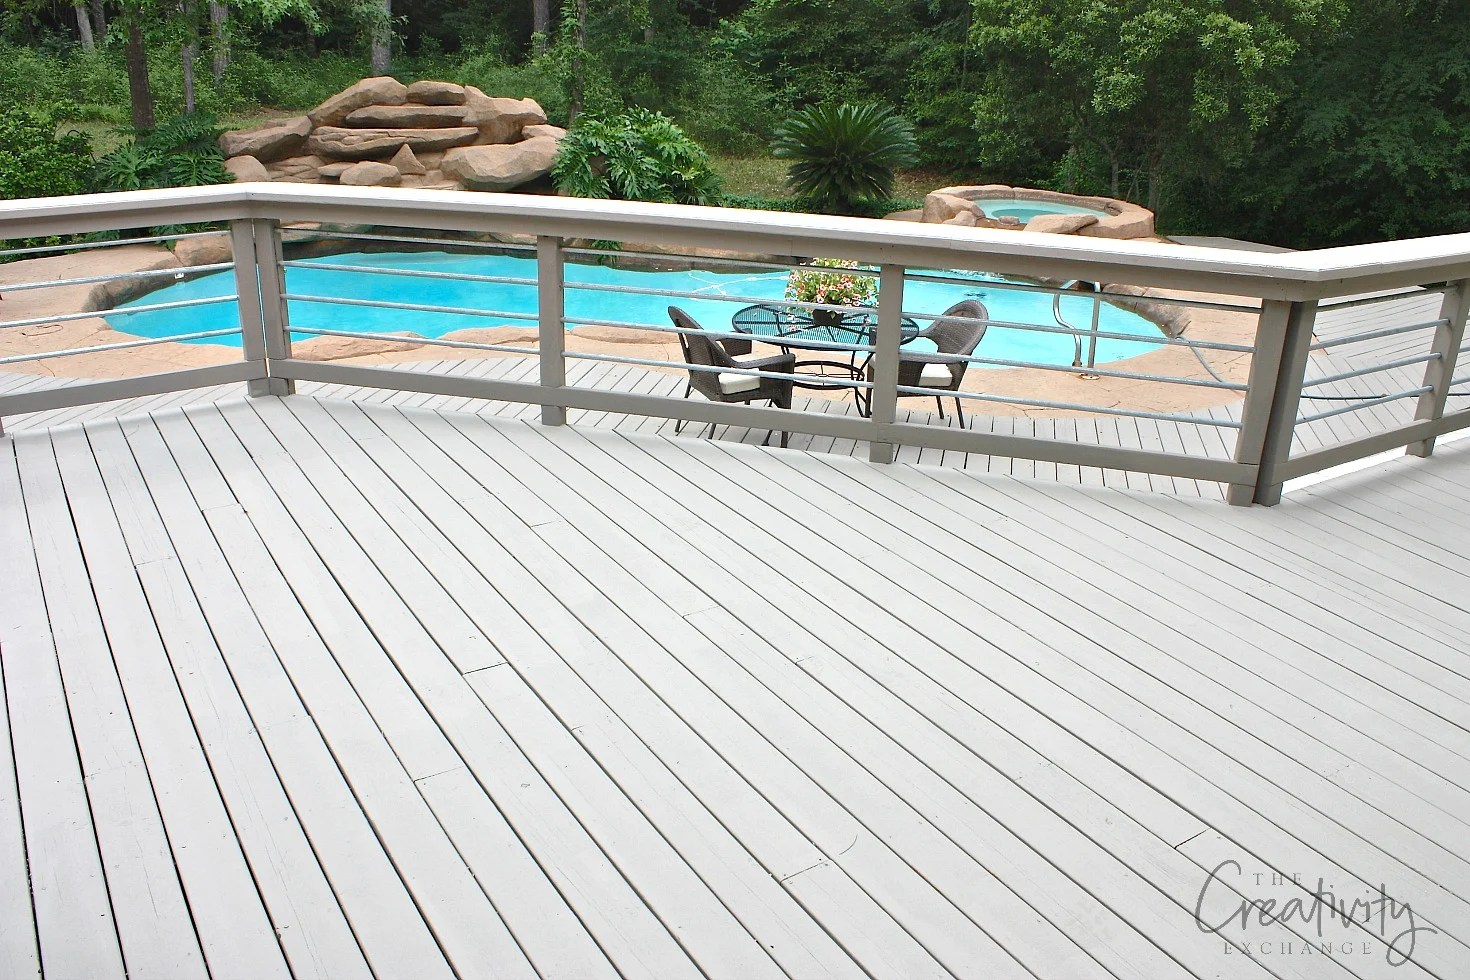 decks and exterior wood features